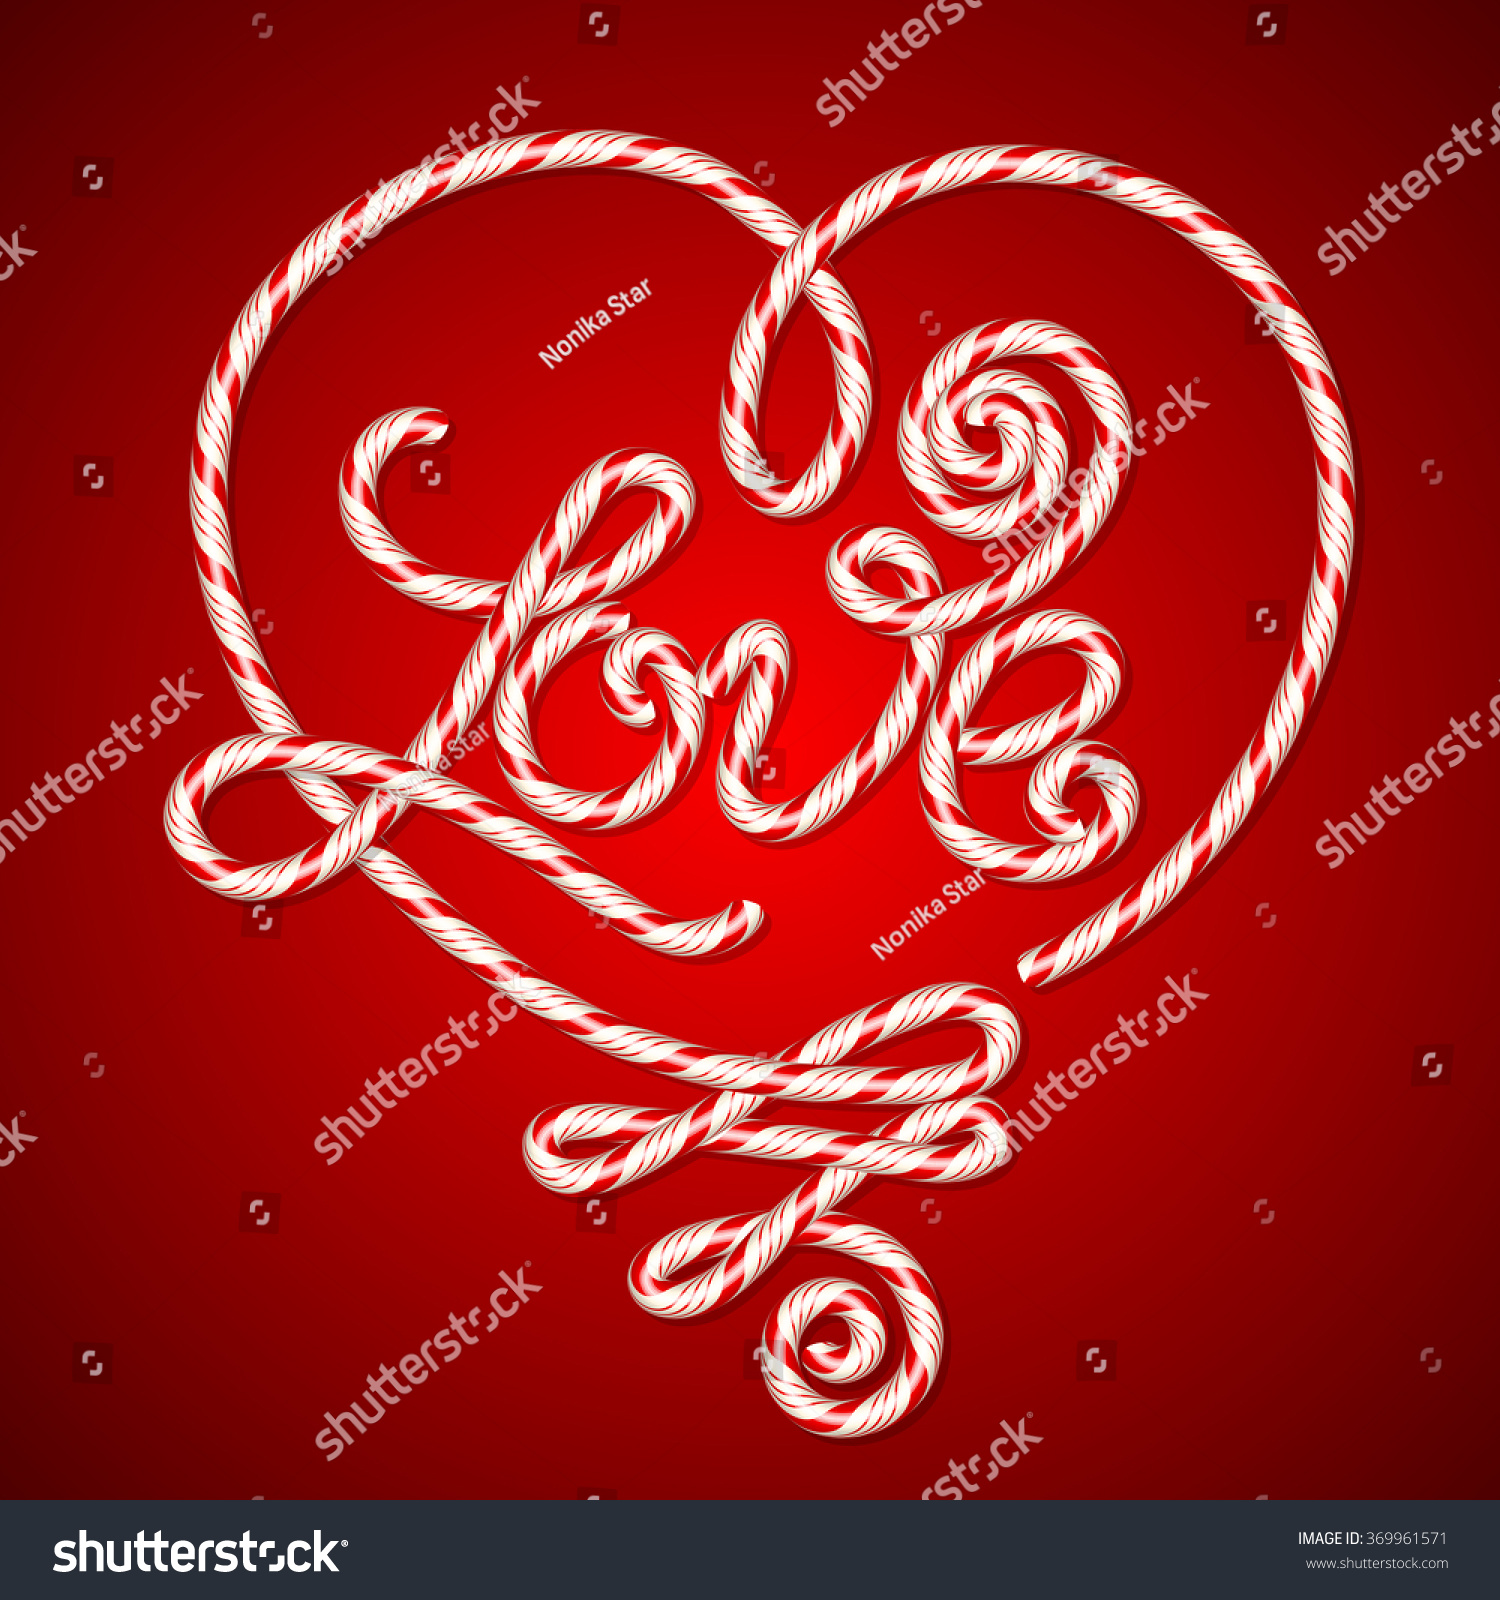 Love Quotes For Valentines Day Cards Valentine Day Messages Lovefacebook Messages Cards And Quotes